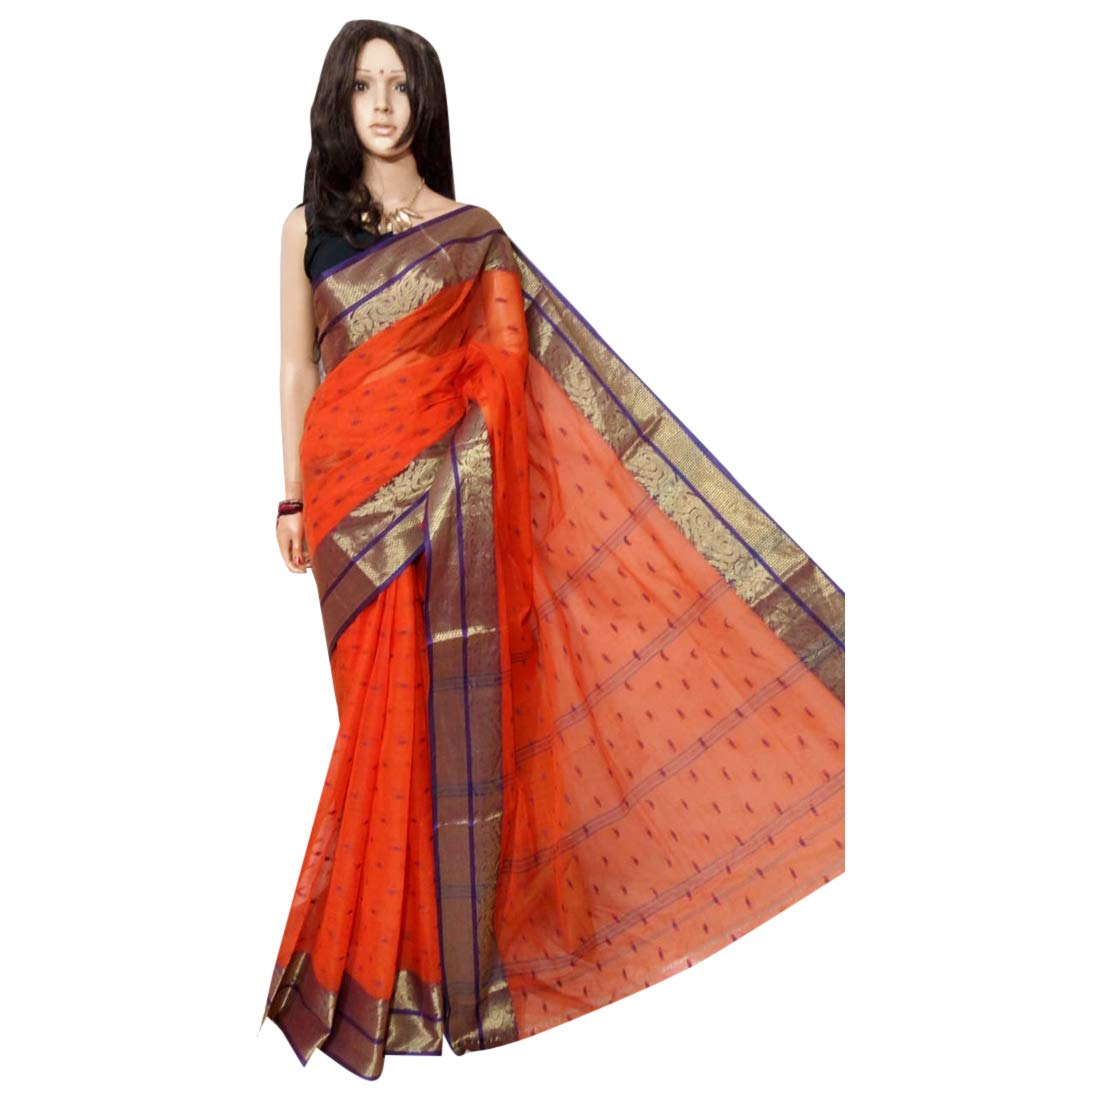 Indian Ethnic Handloom Zari work Zamdani Saree Party Women Wear Sari 101a